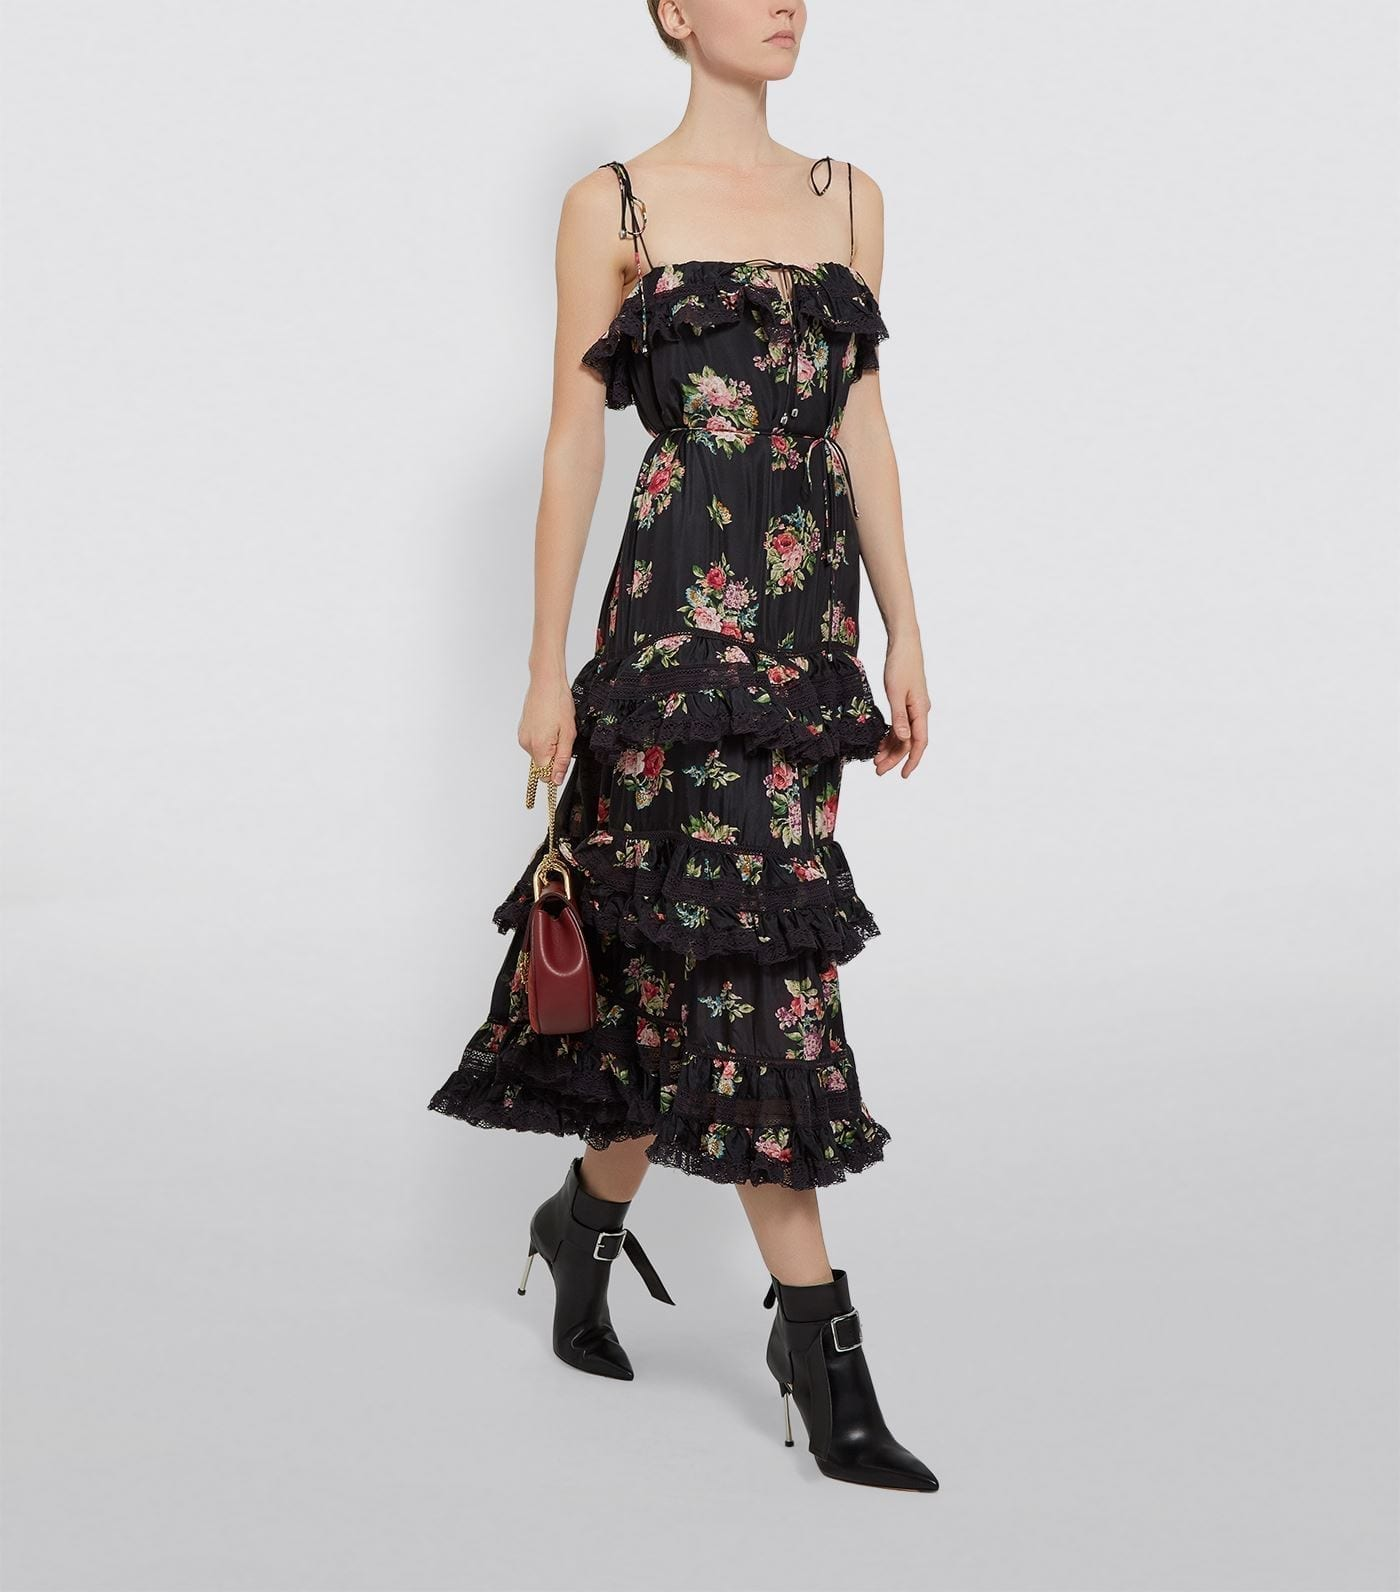 ZIMMERMANN Floral Tiered Dress